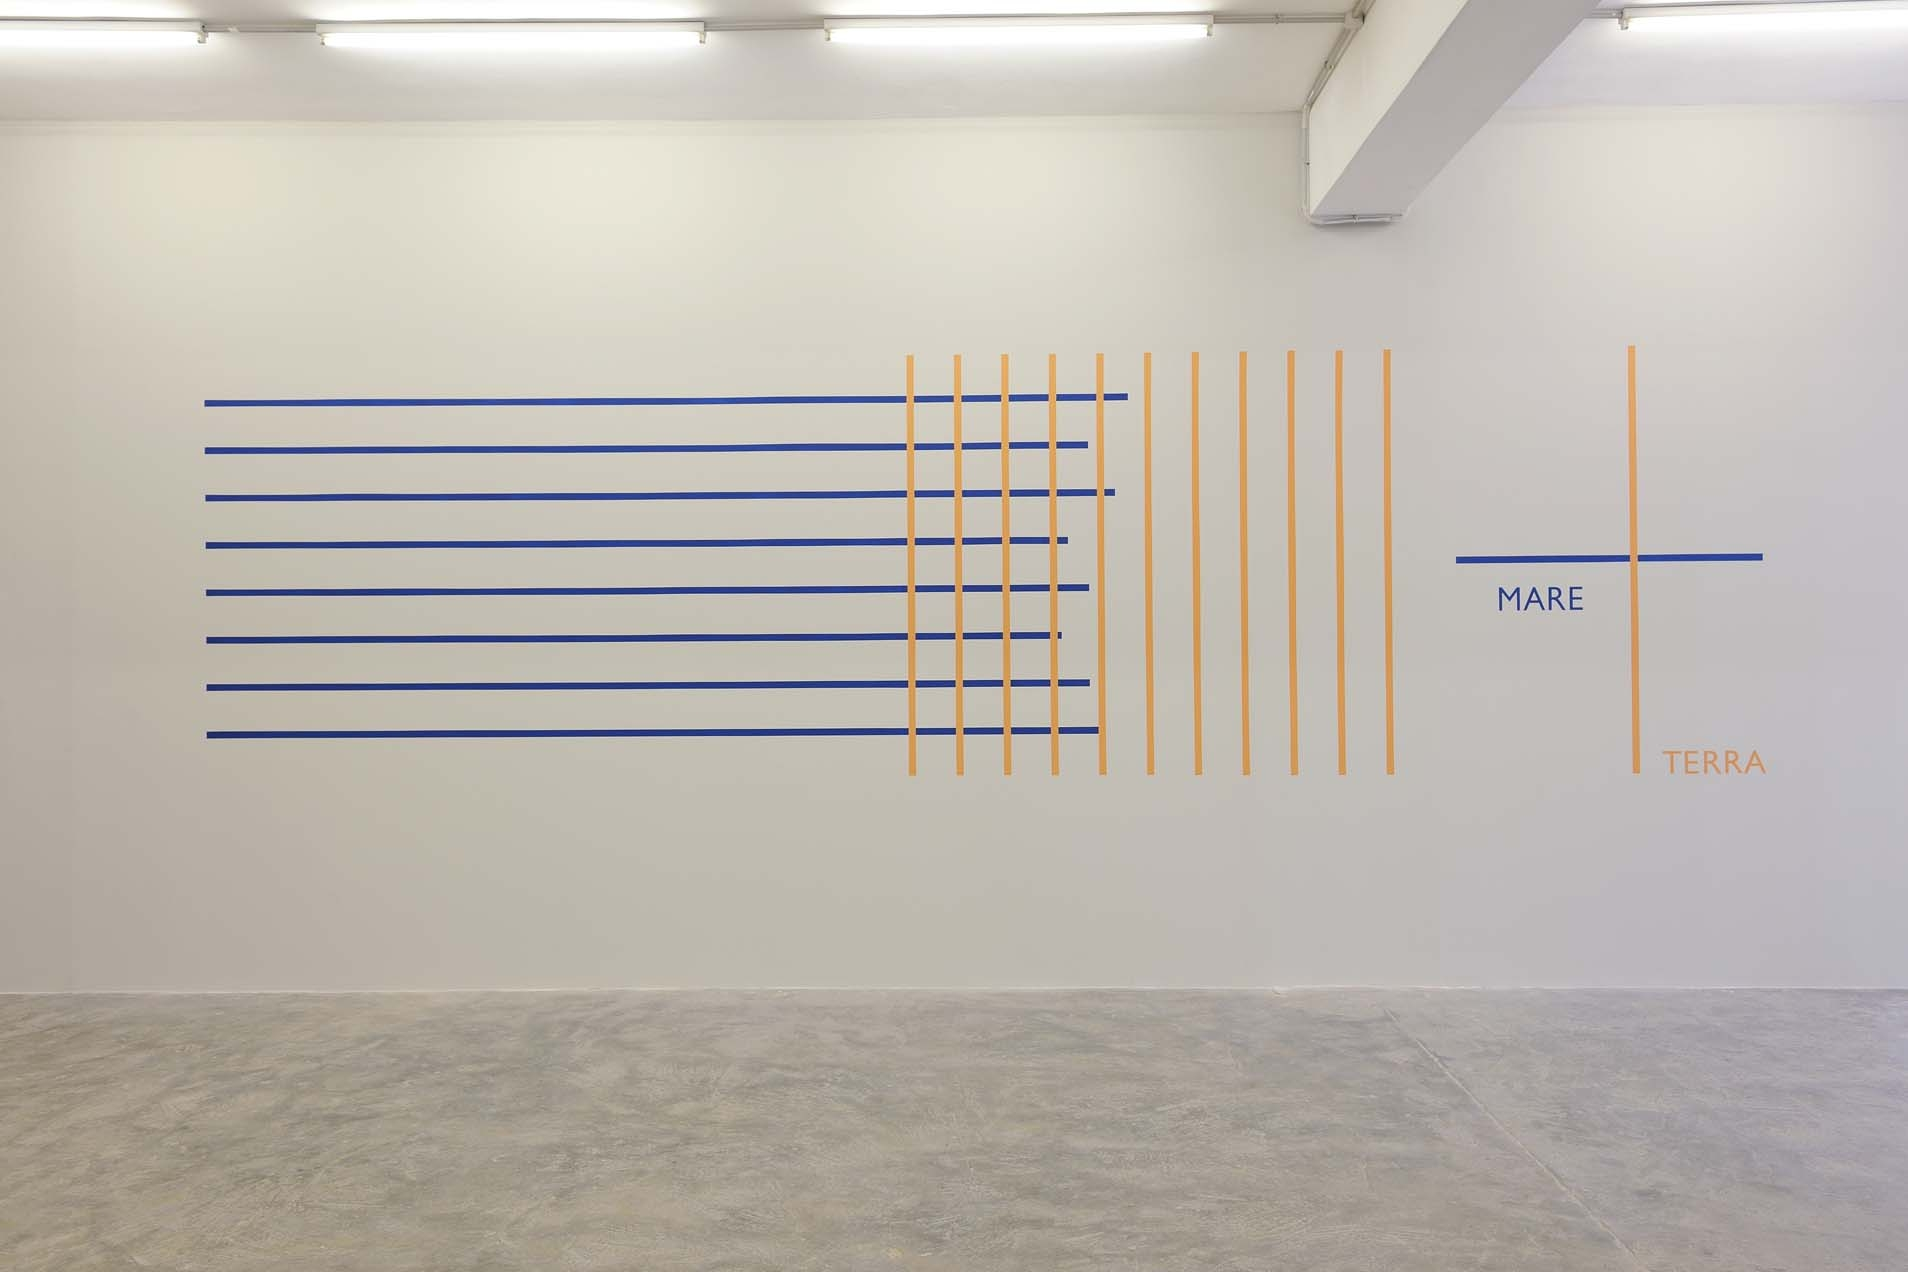 Mare Terra, 2002 (Design from 1973), Wall painting, Variable dimensions, Unique